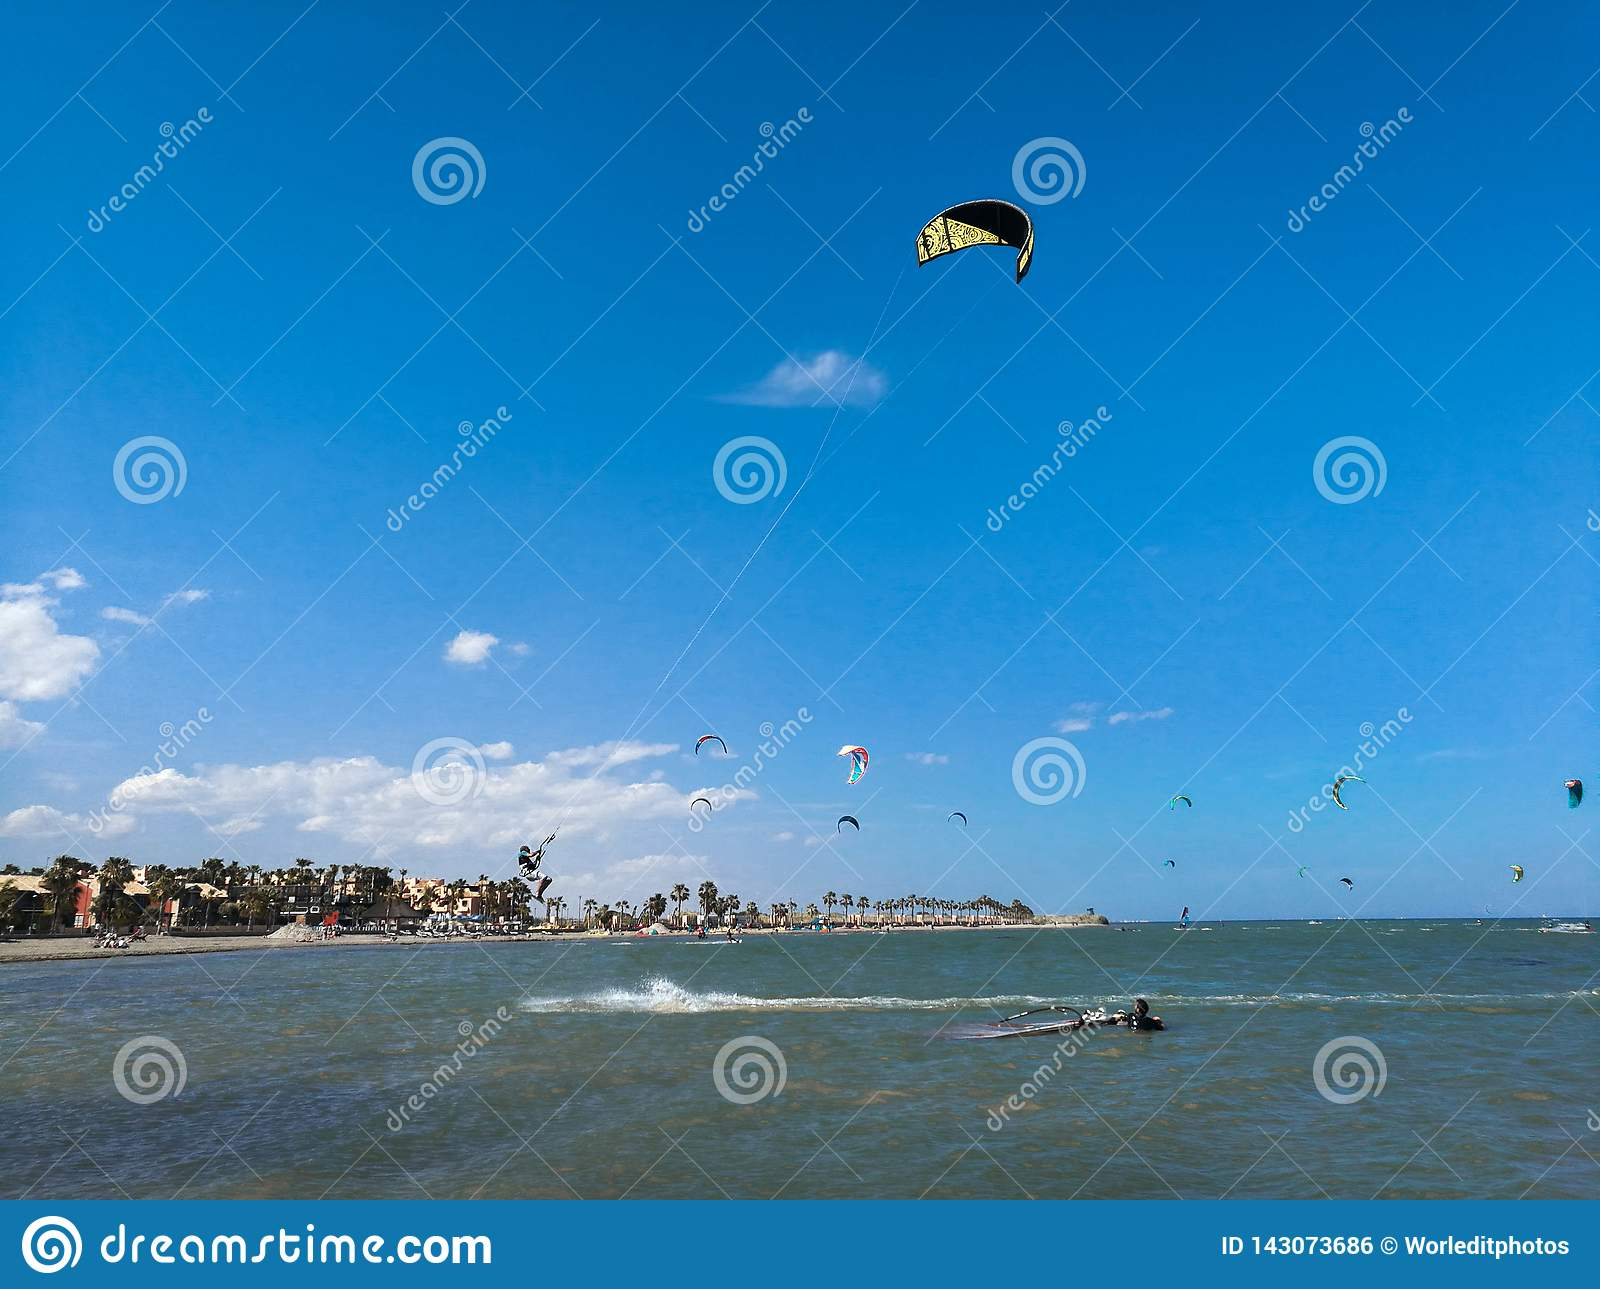 Kite boarding sportsman flying high with kite and kiteboard in boots in the blue sky, active sports and life style in spanish